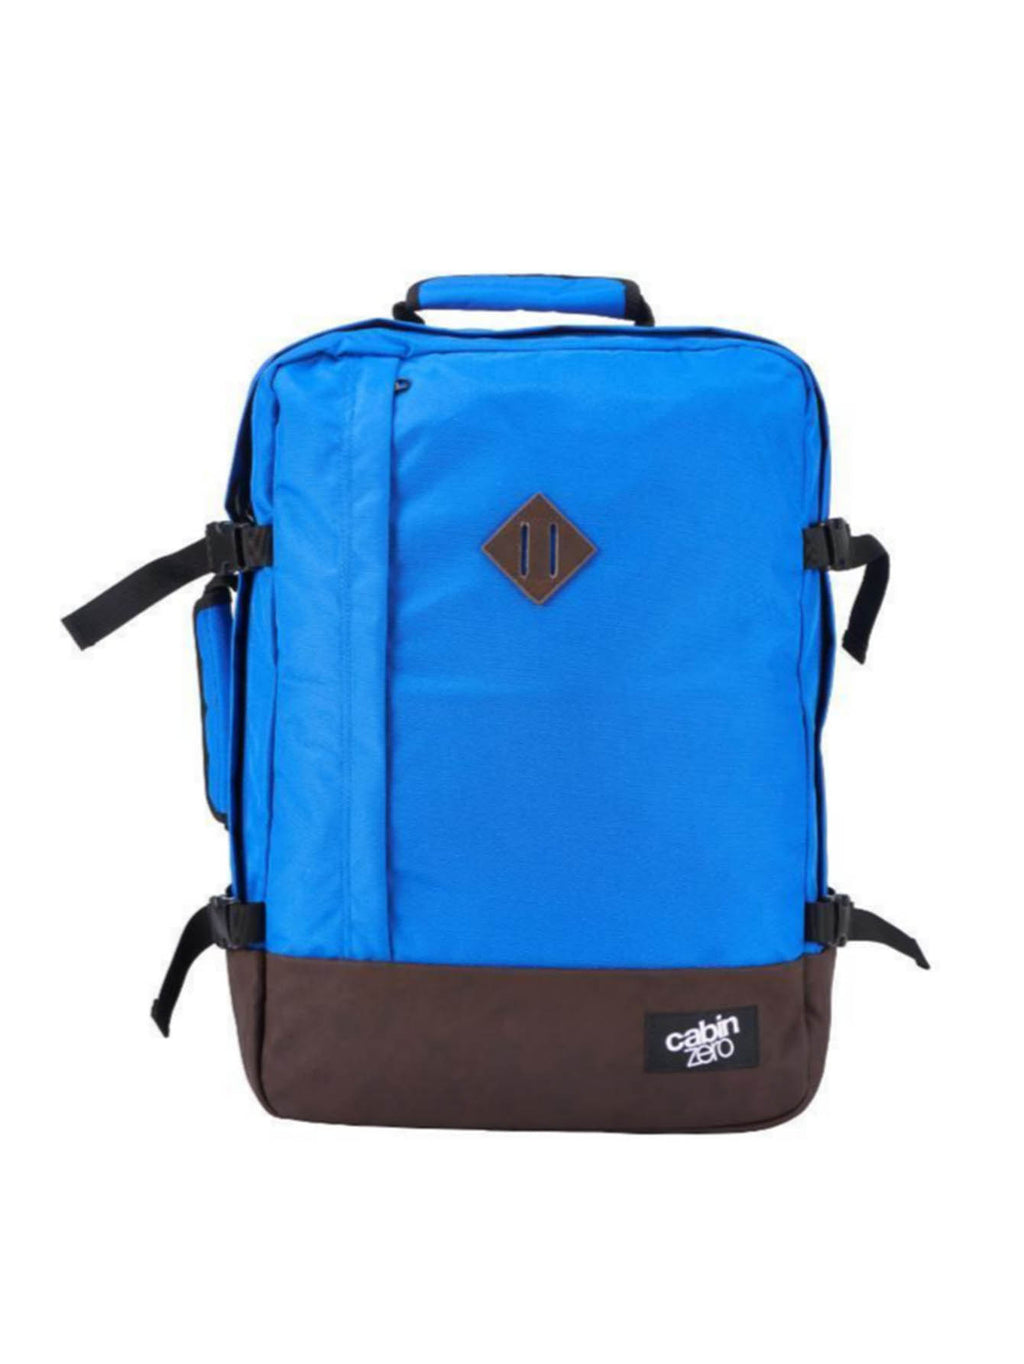 Cabinzero Vintage 44L in Royal Blue Color